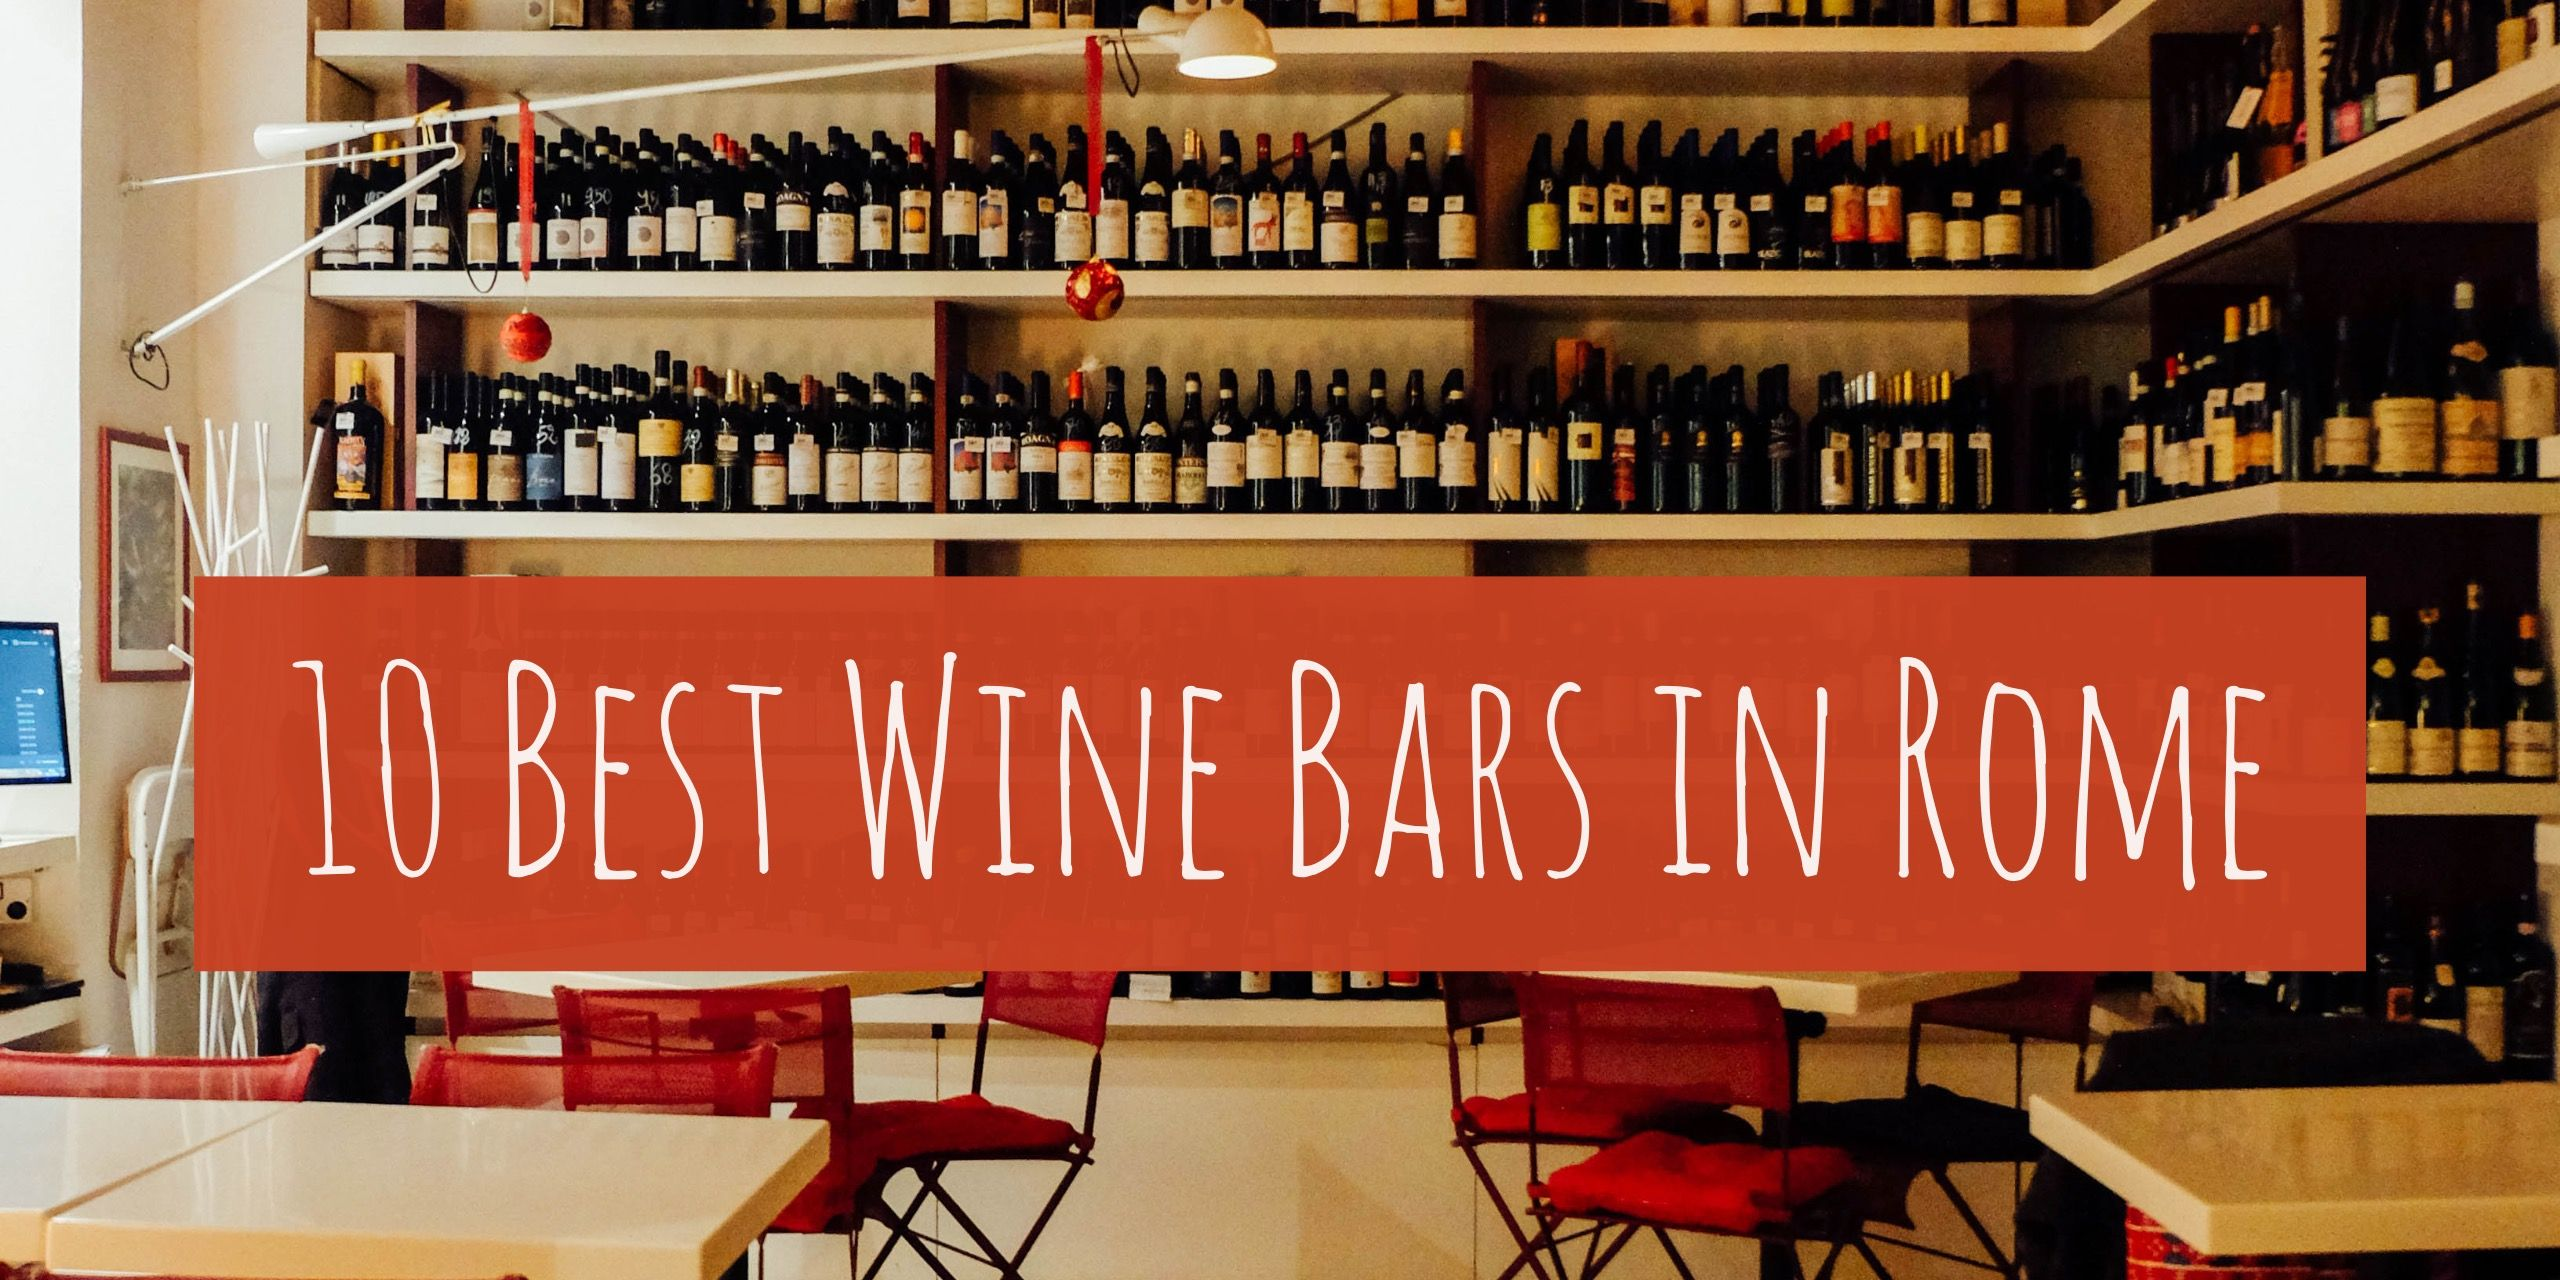 Where To Find The Best Wine Bars In Rome Italy Wine Bar Rome Italy Wine